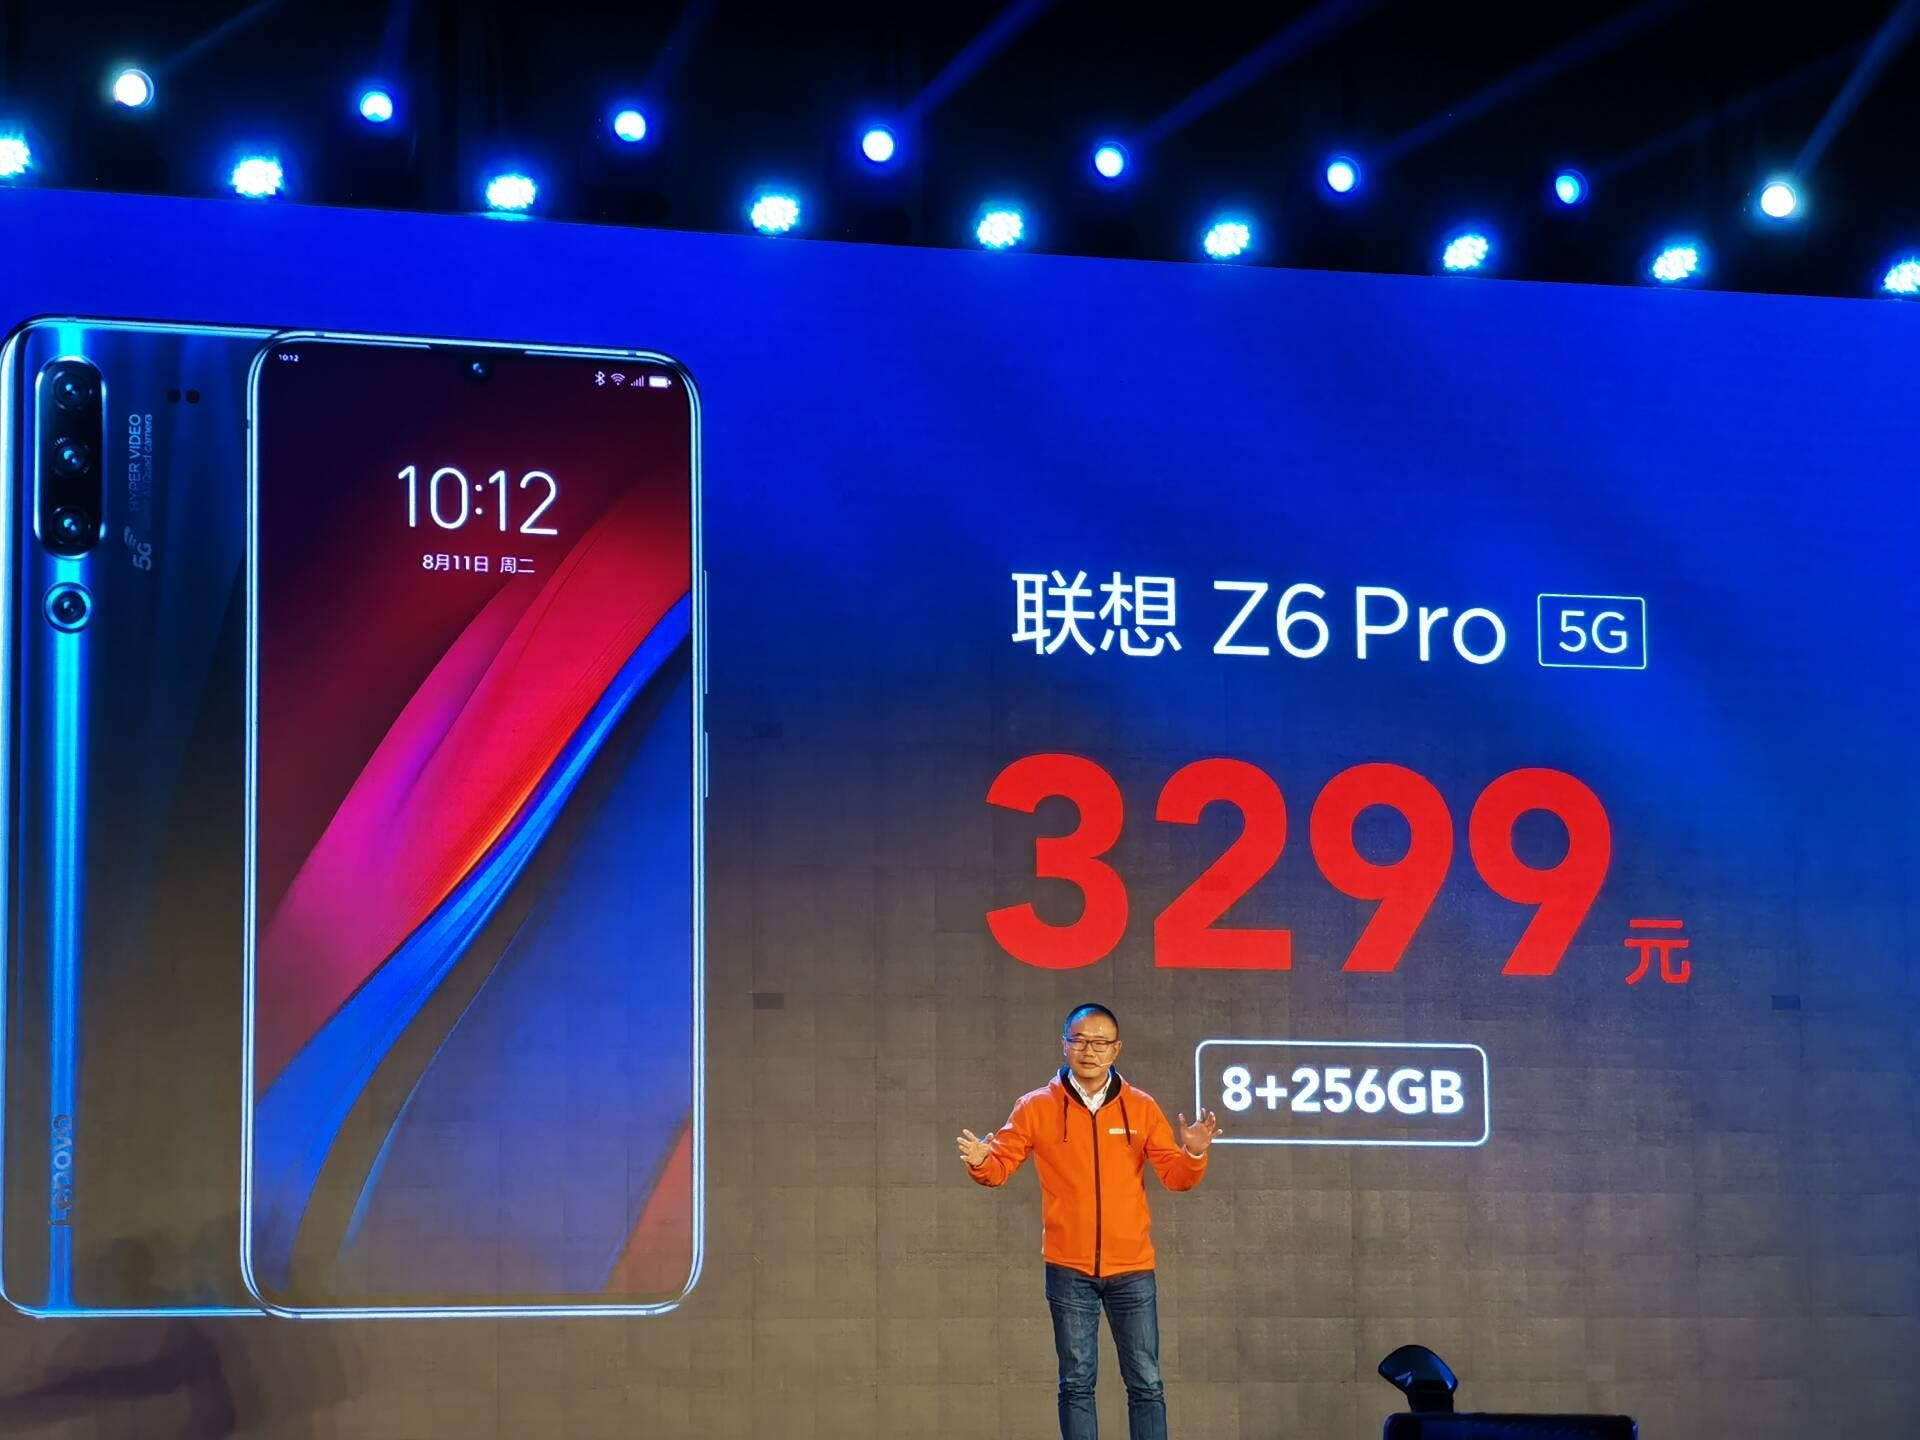 Lenovo Z6 Pro 5G Launched: The Cheapest 5G Phone on the Planet